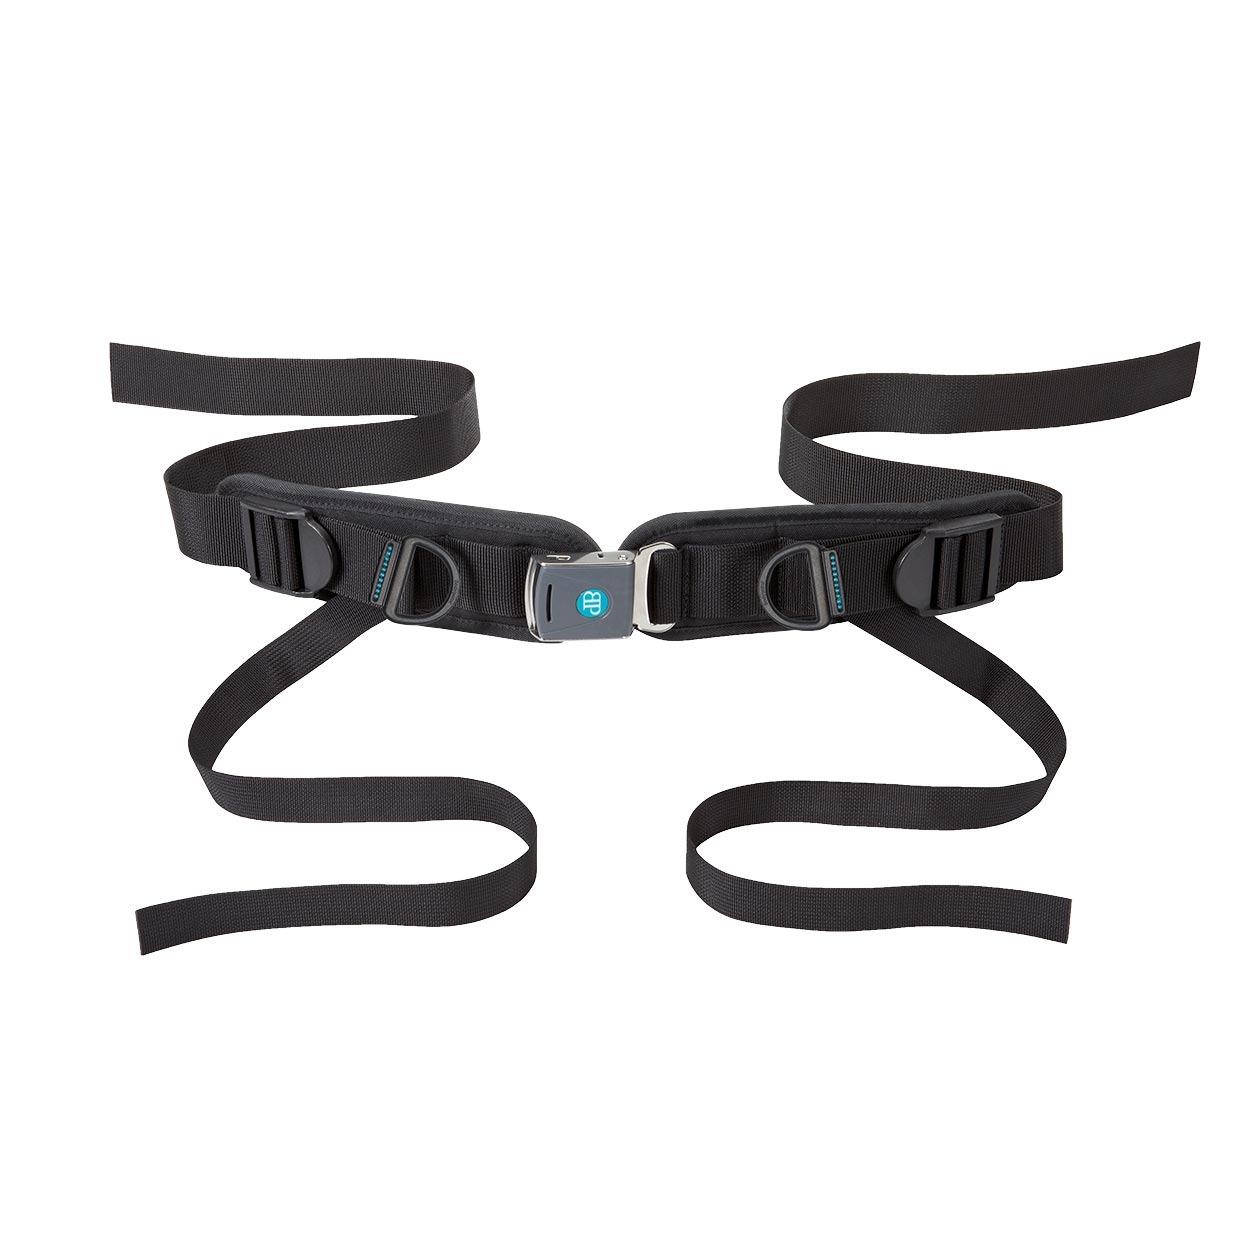 Bodypoint rear pull four point padded hip belt with Rehab Latch Buckle